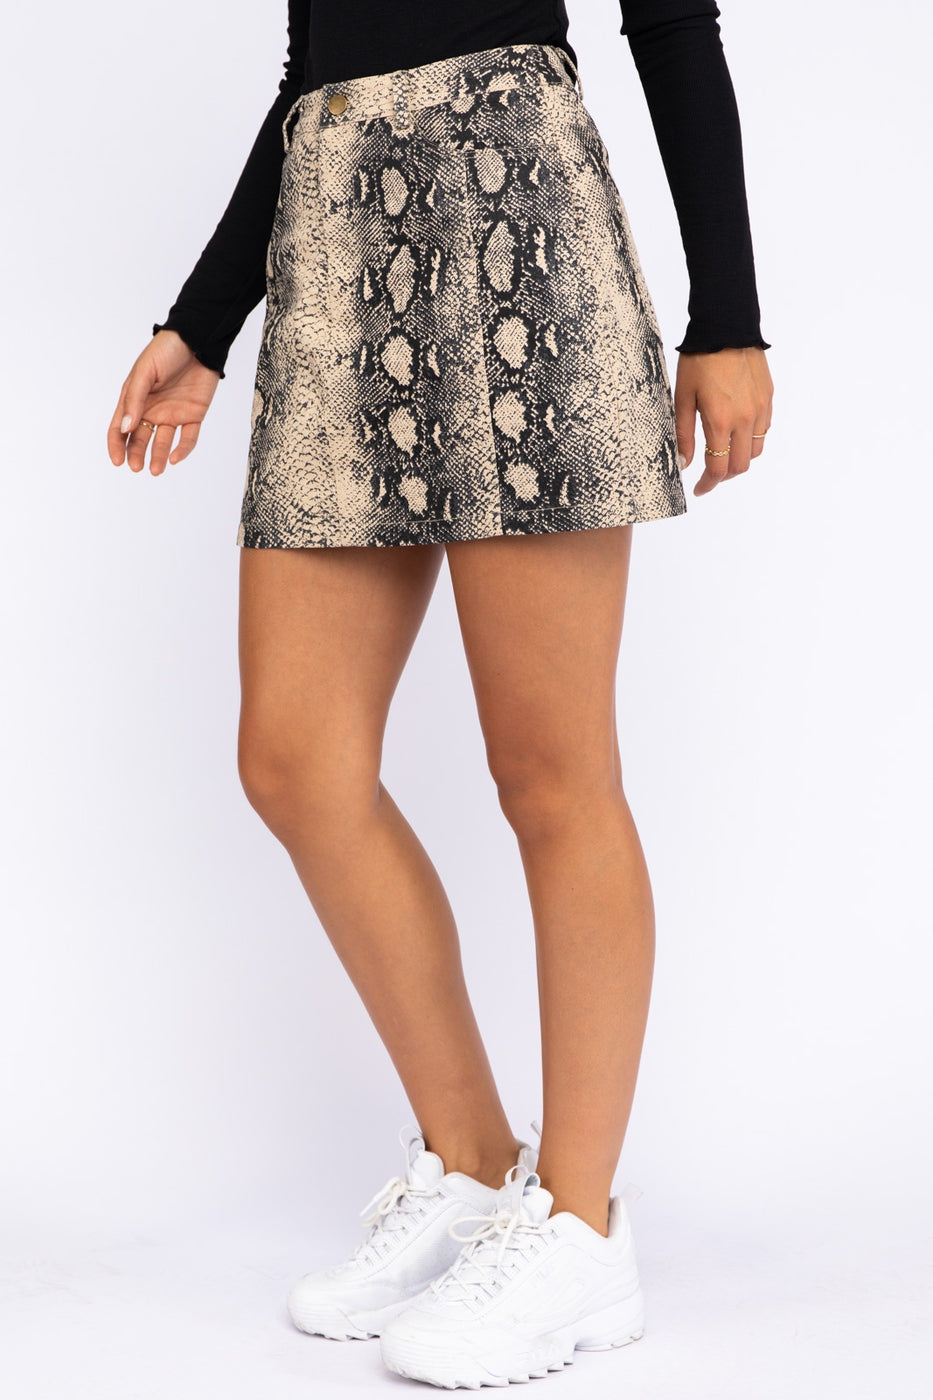 Snake Skin Print Mini Skirt in Taupe Siin Bees